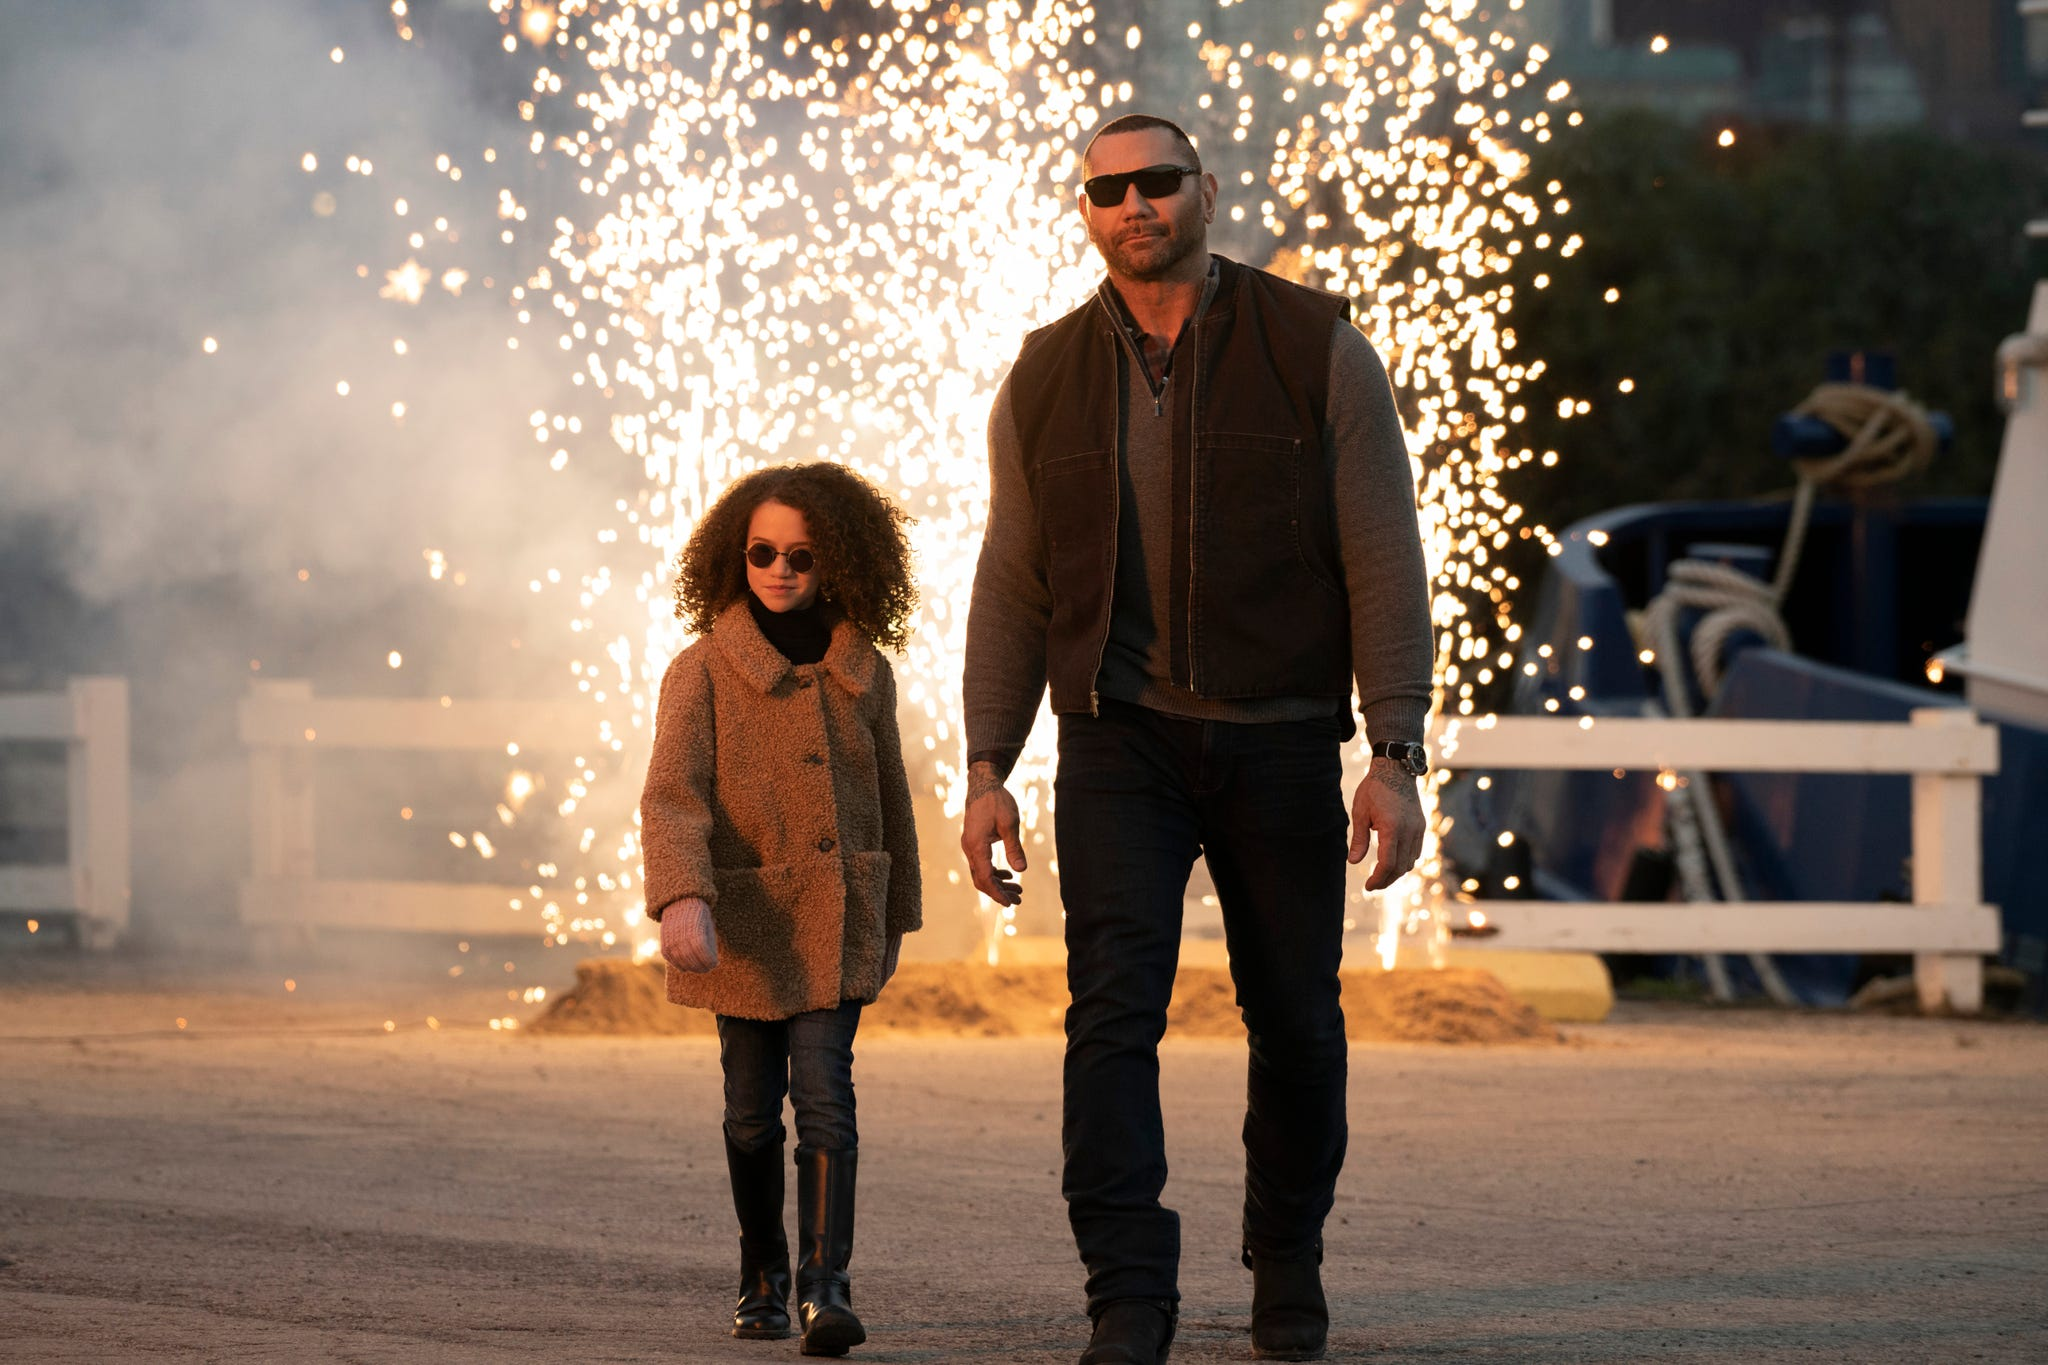 My Spy  is a predictable addition to the spy comedy genre. But Dave Bautista makes it fun